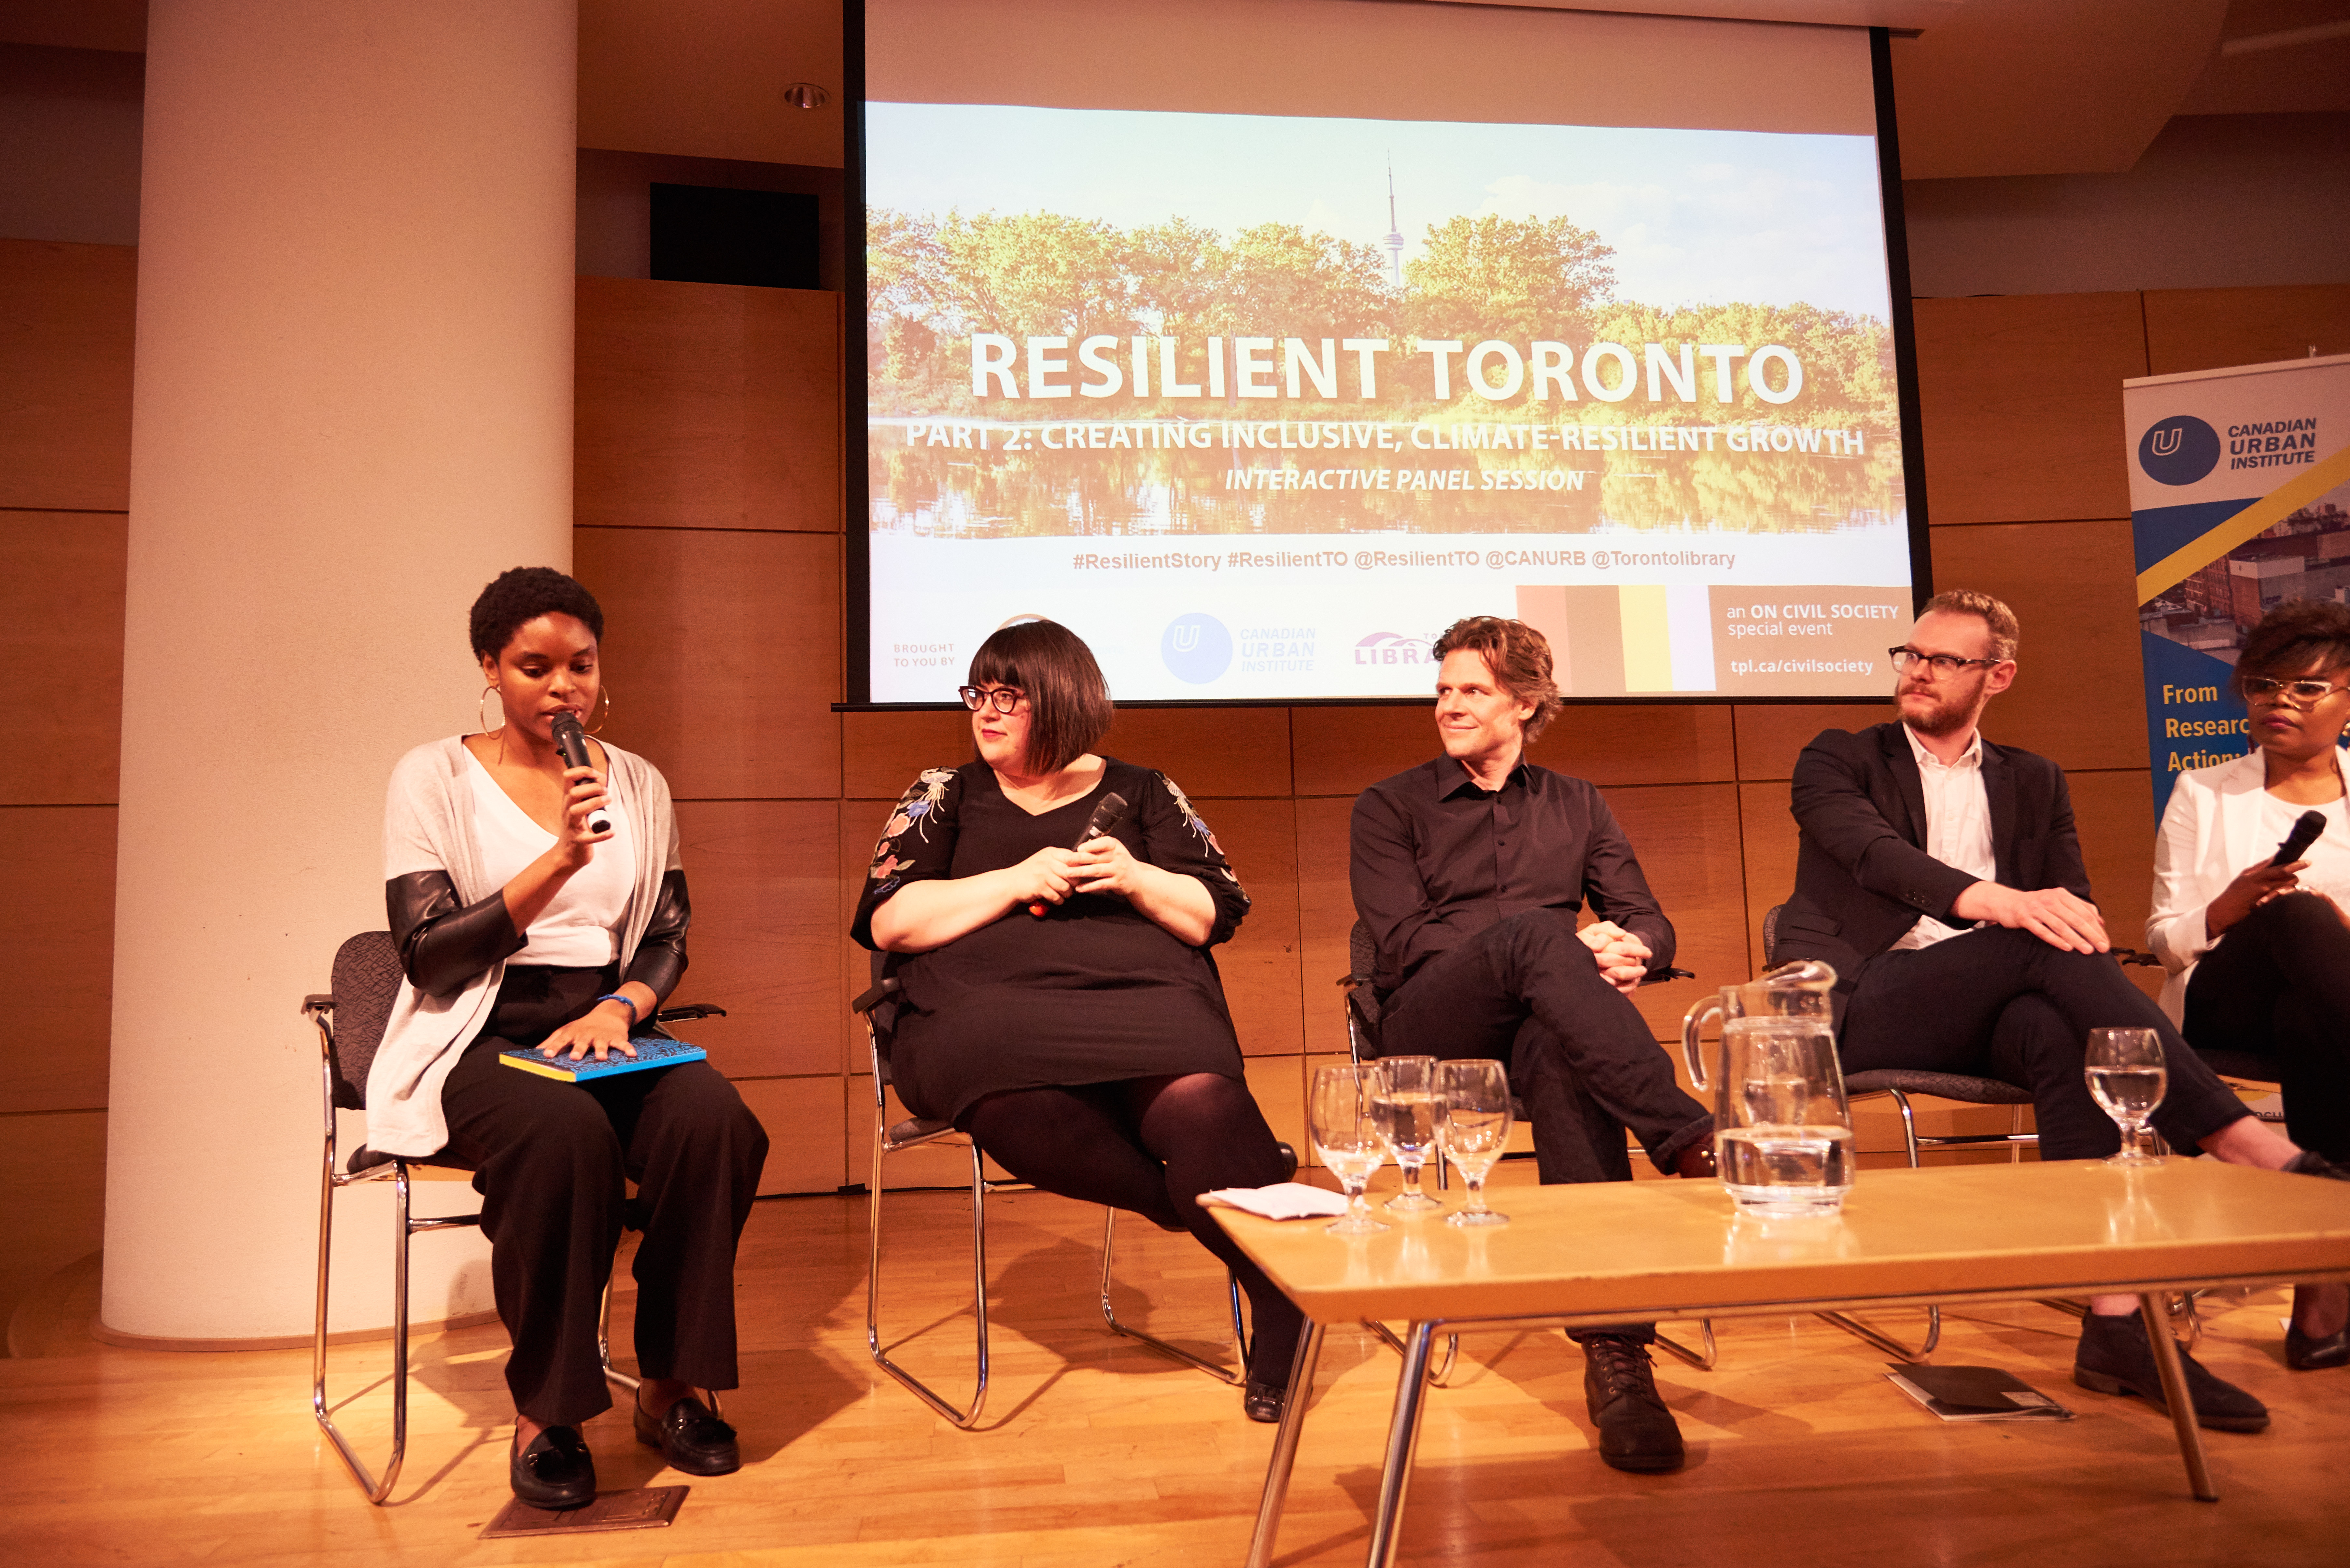 A different community member speaks at our May 16 panel discussion